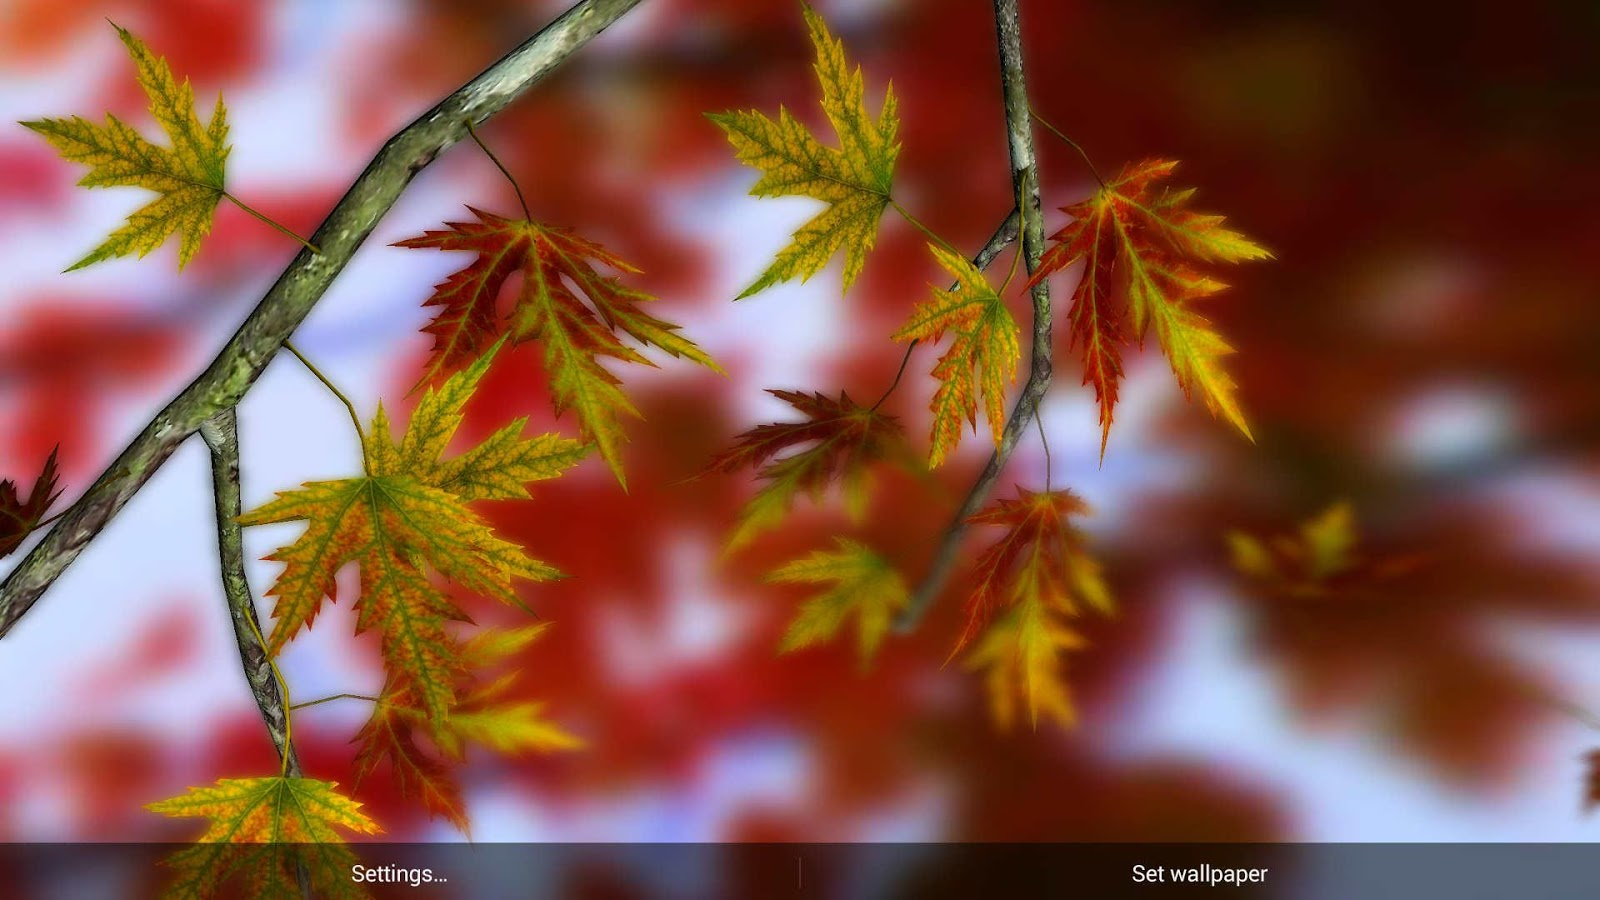 3d Live Wallpaper Parallax Autumn Leaves In Hd Gyro 3d Parallax Wallpaper Android